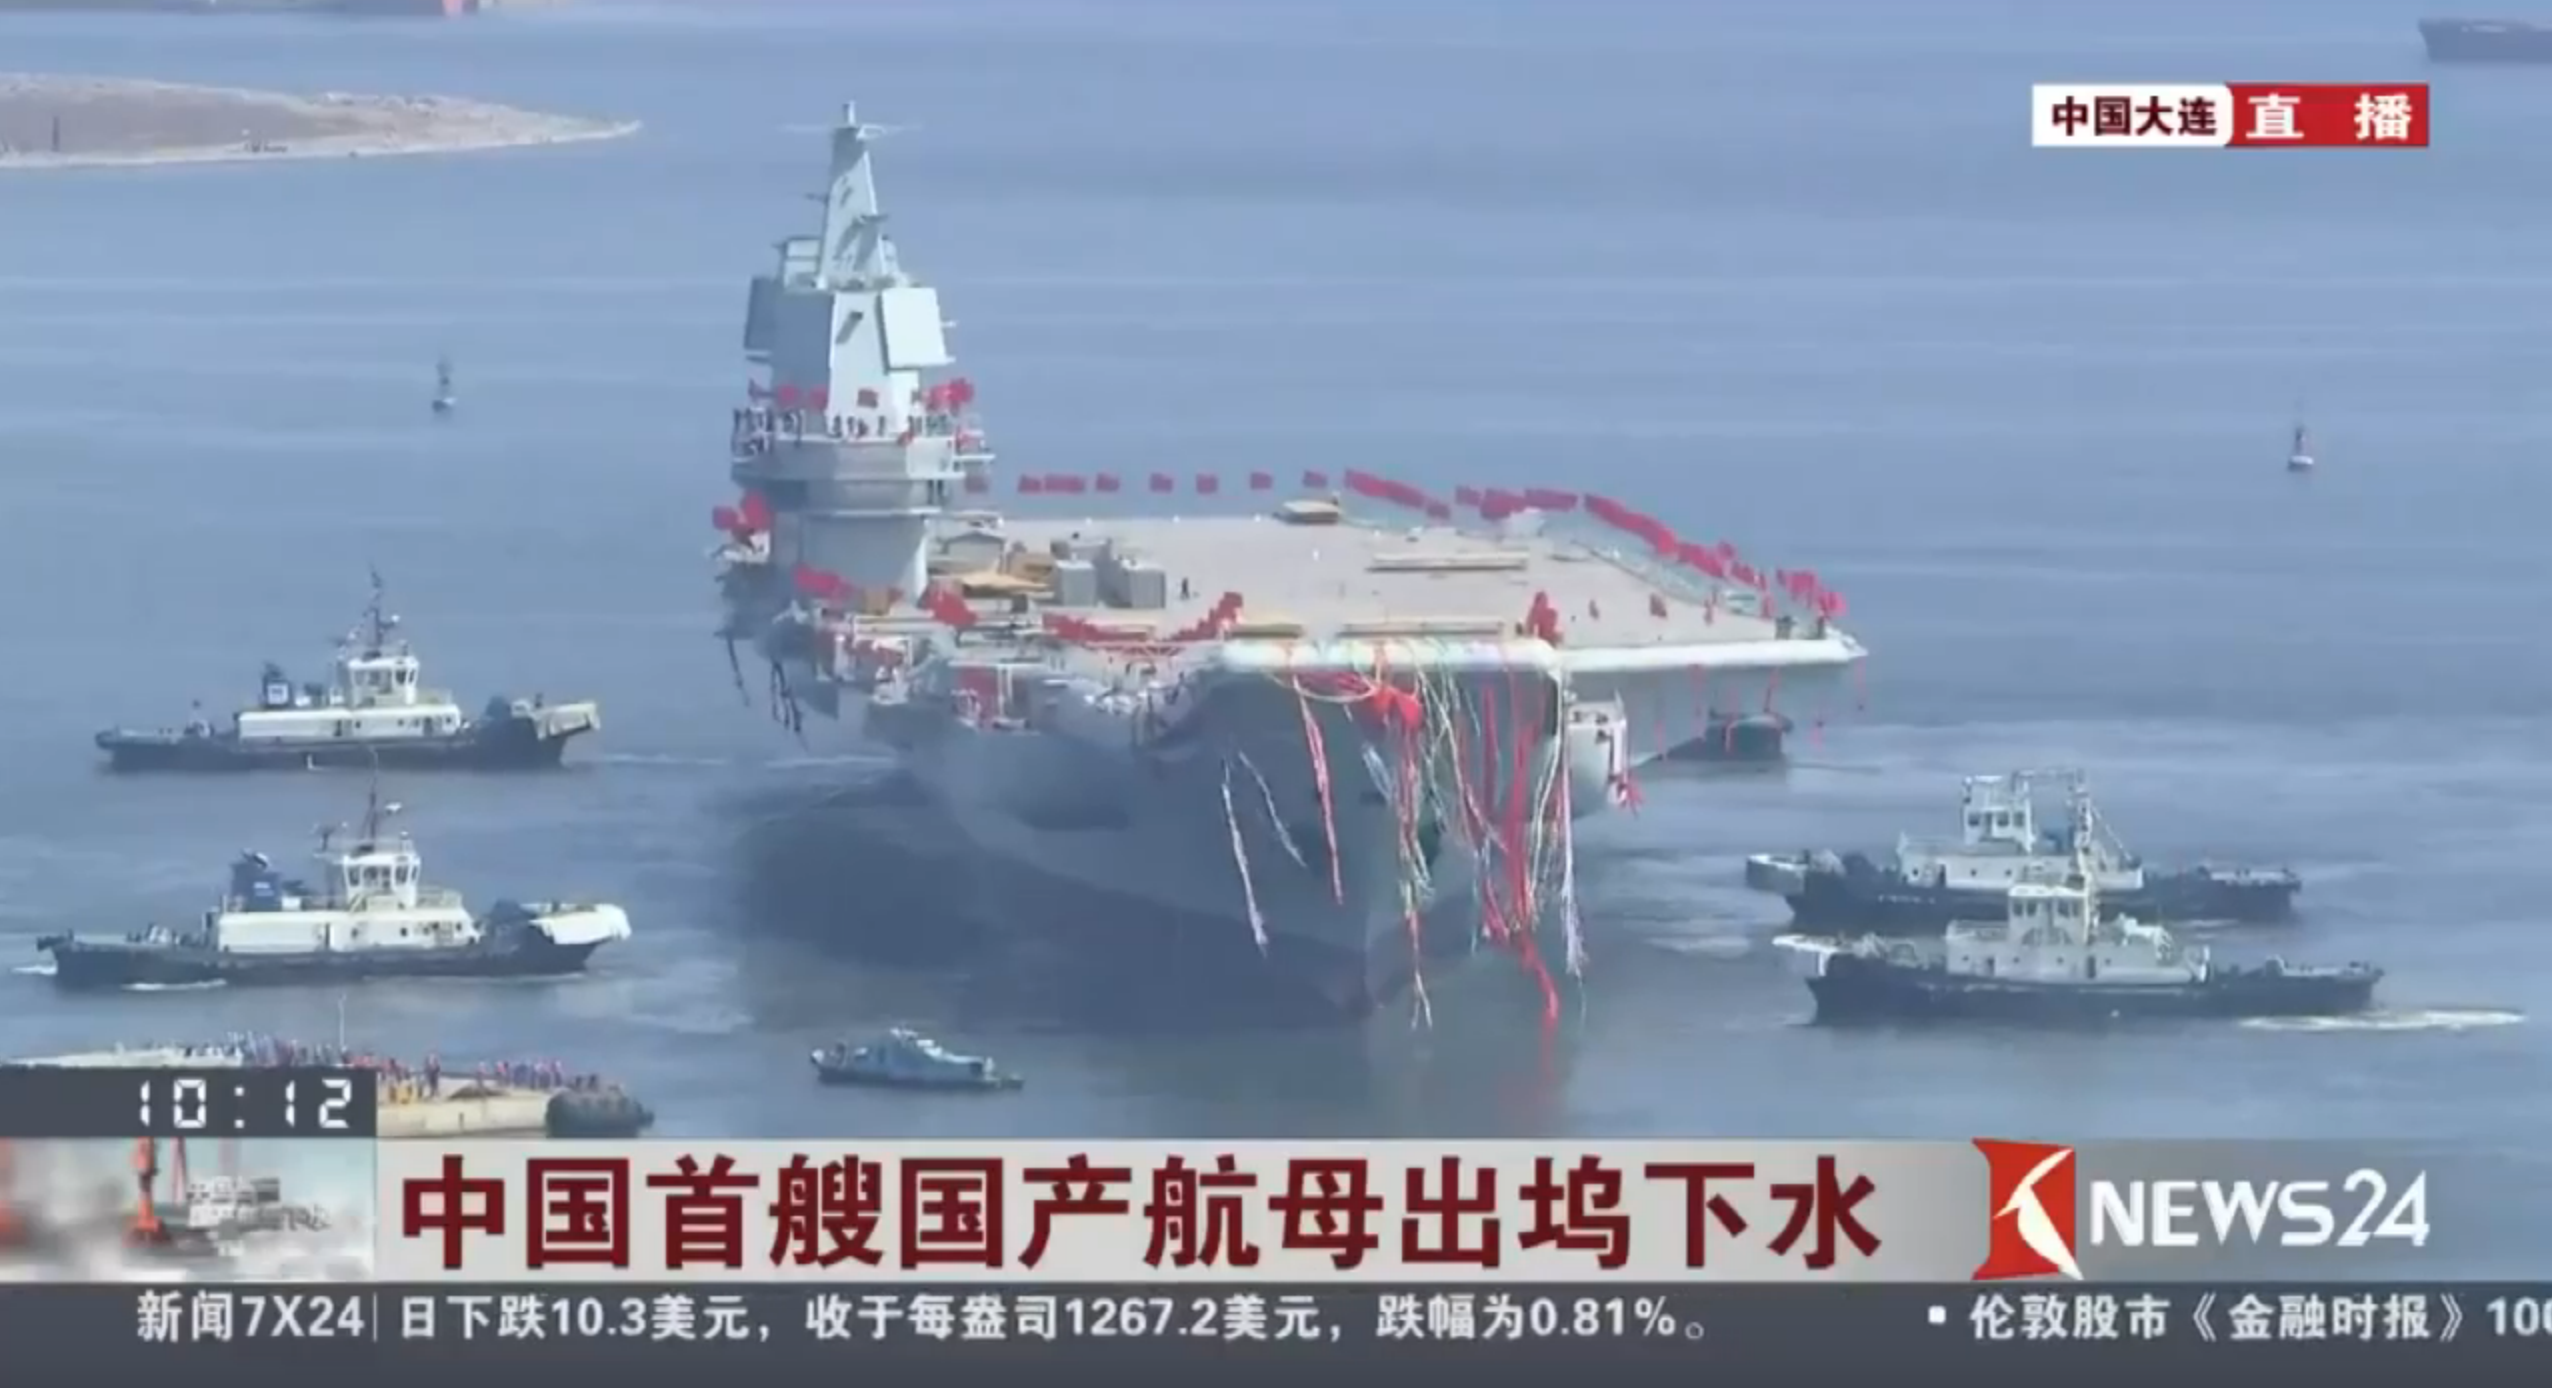 Chinese first homemade aircraft carrier was launched in Dalian on Wednesday, a coastal city in China's northeast Liaoning Province.